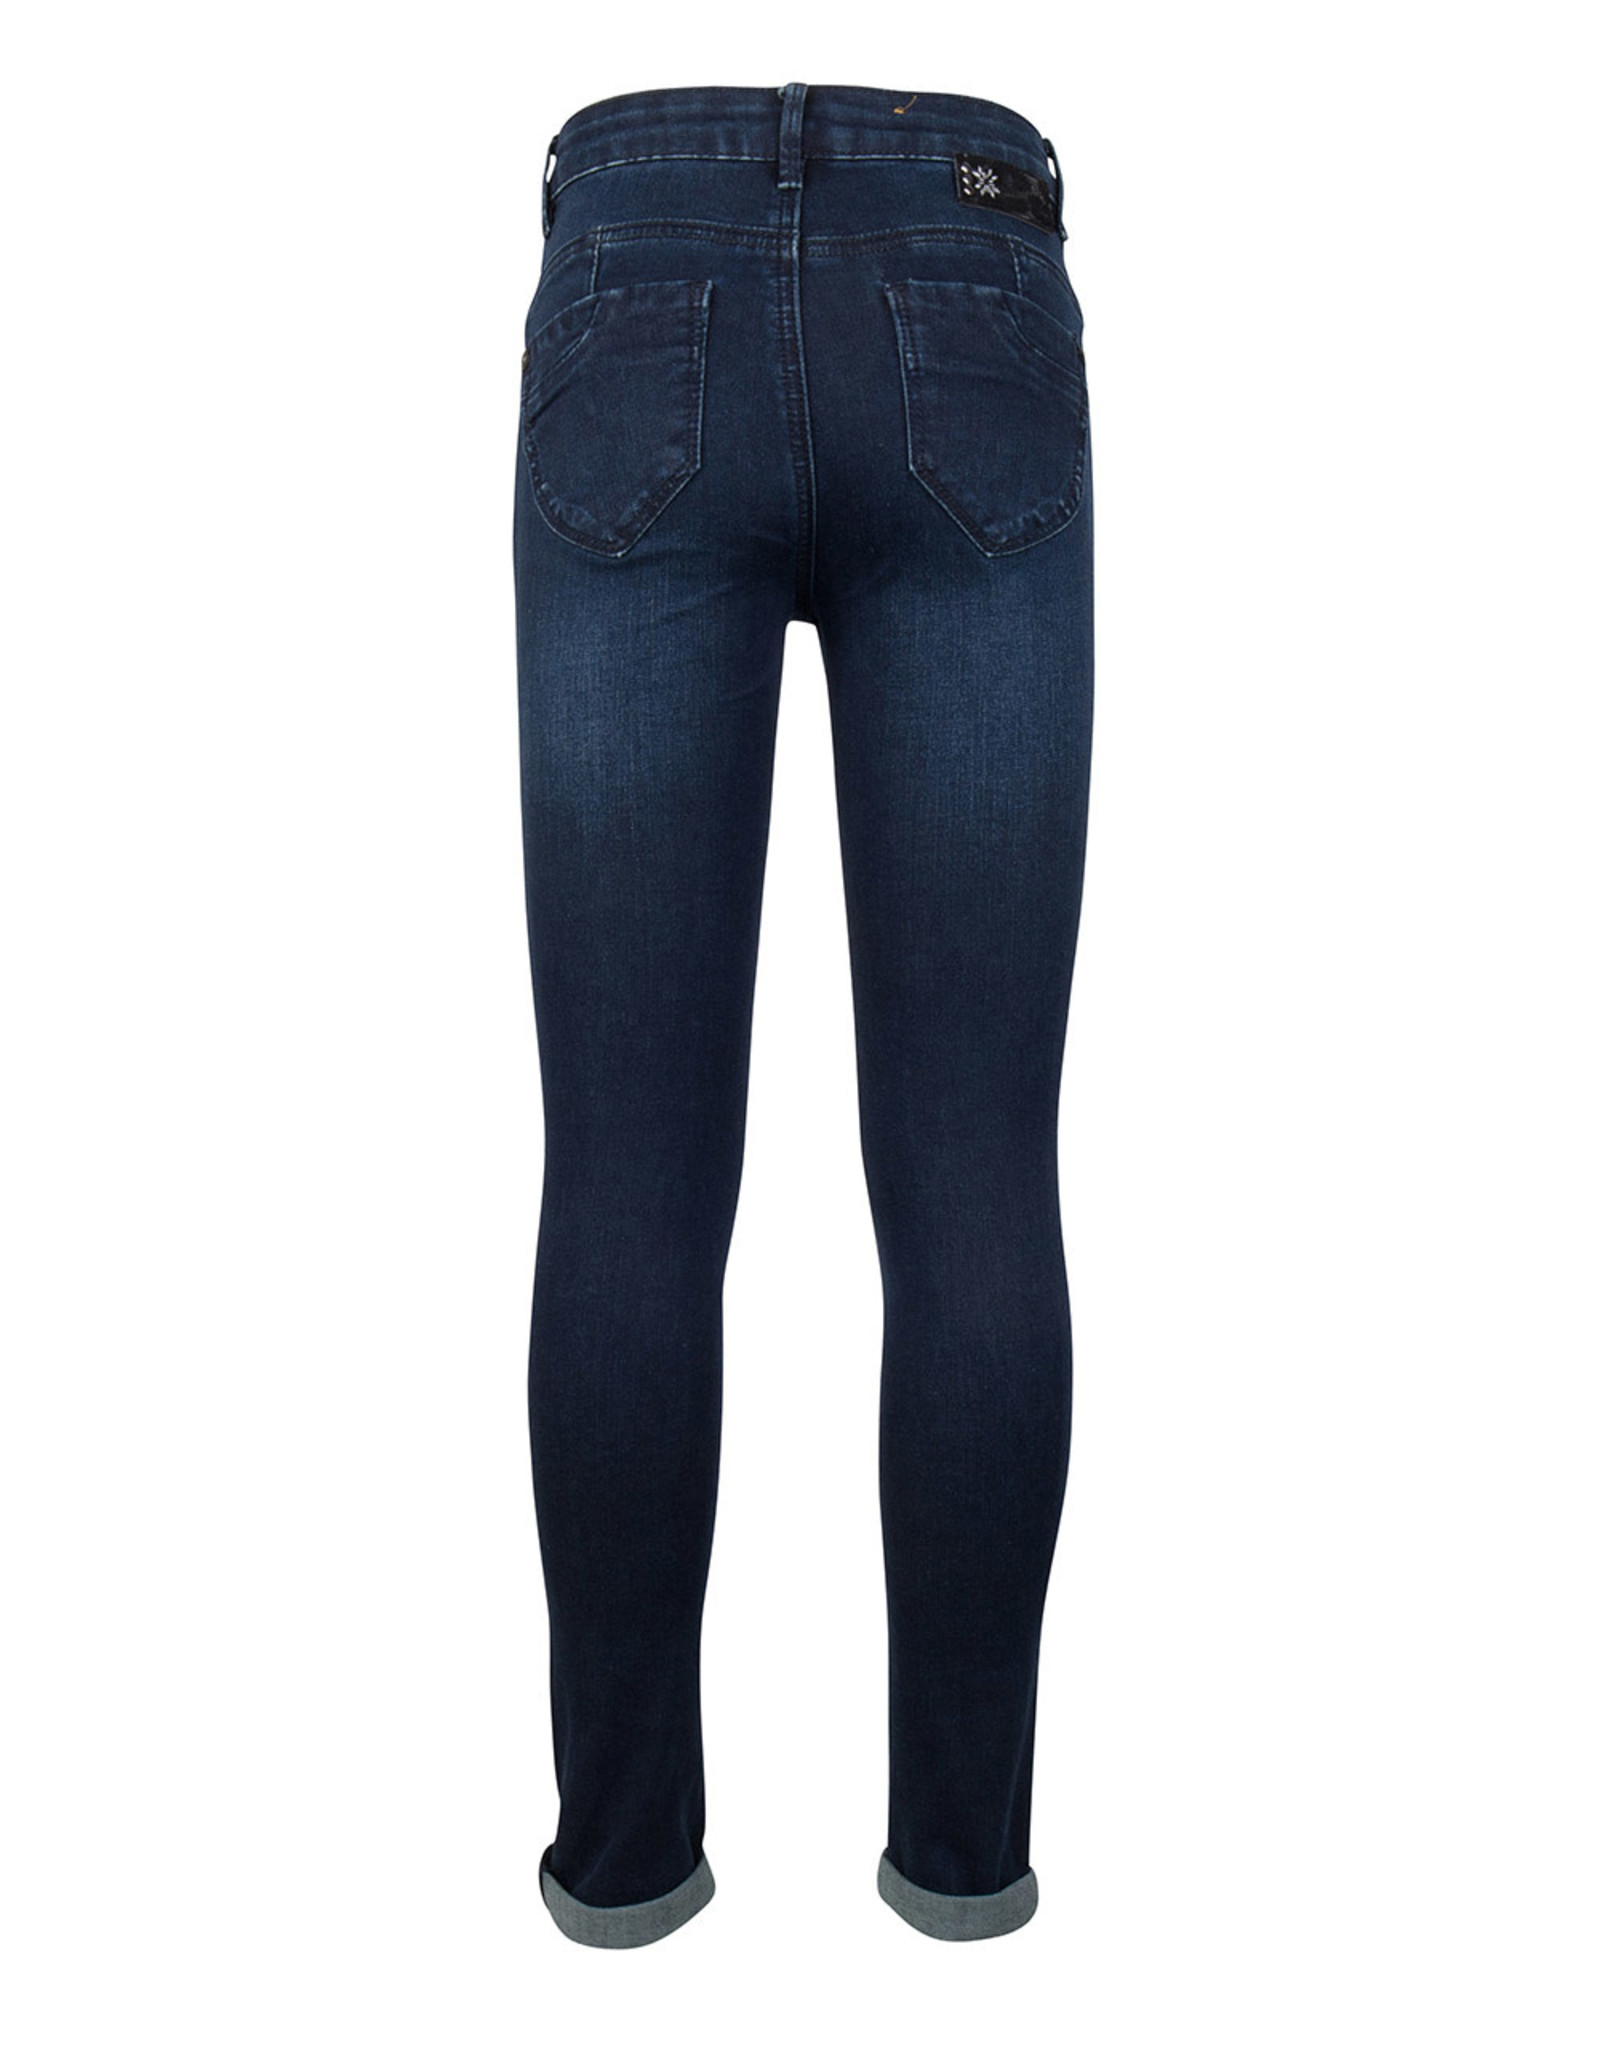 Indian Blue jeans IBG22-2152